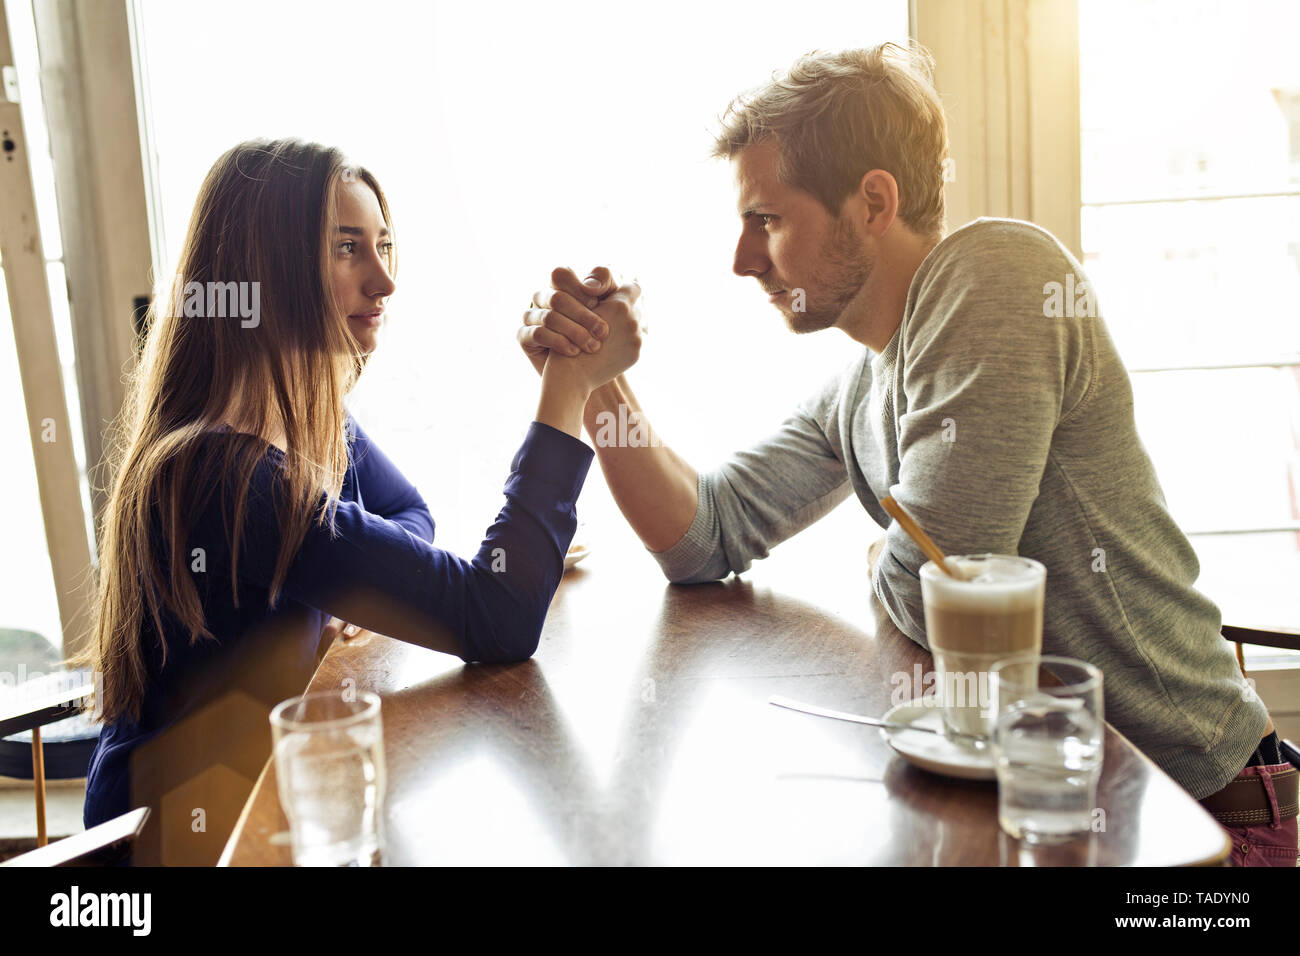 Young couple in a cafe arm wrestling - Stock Image